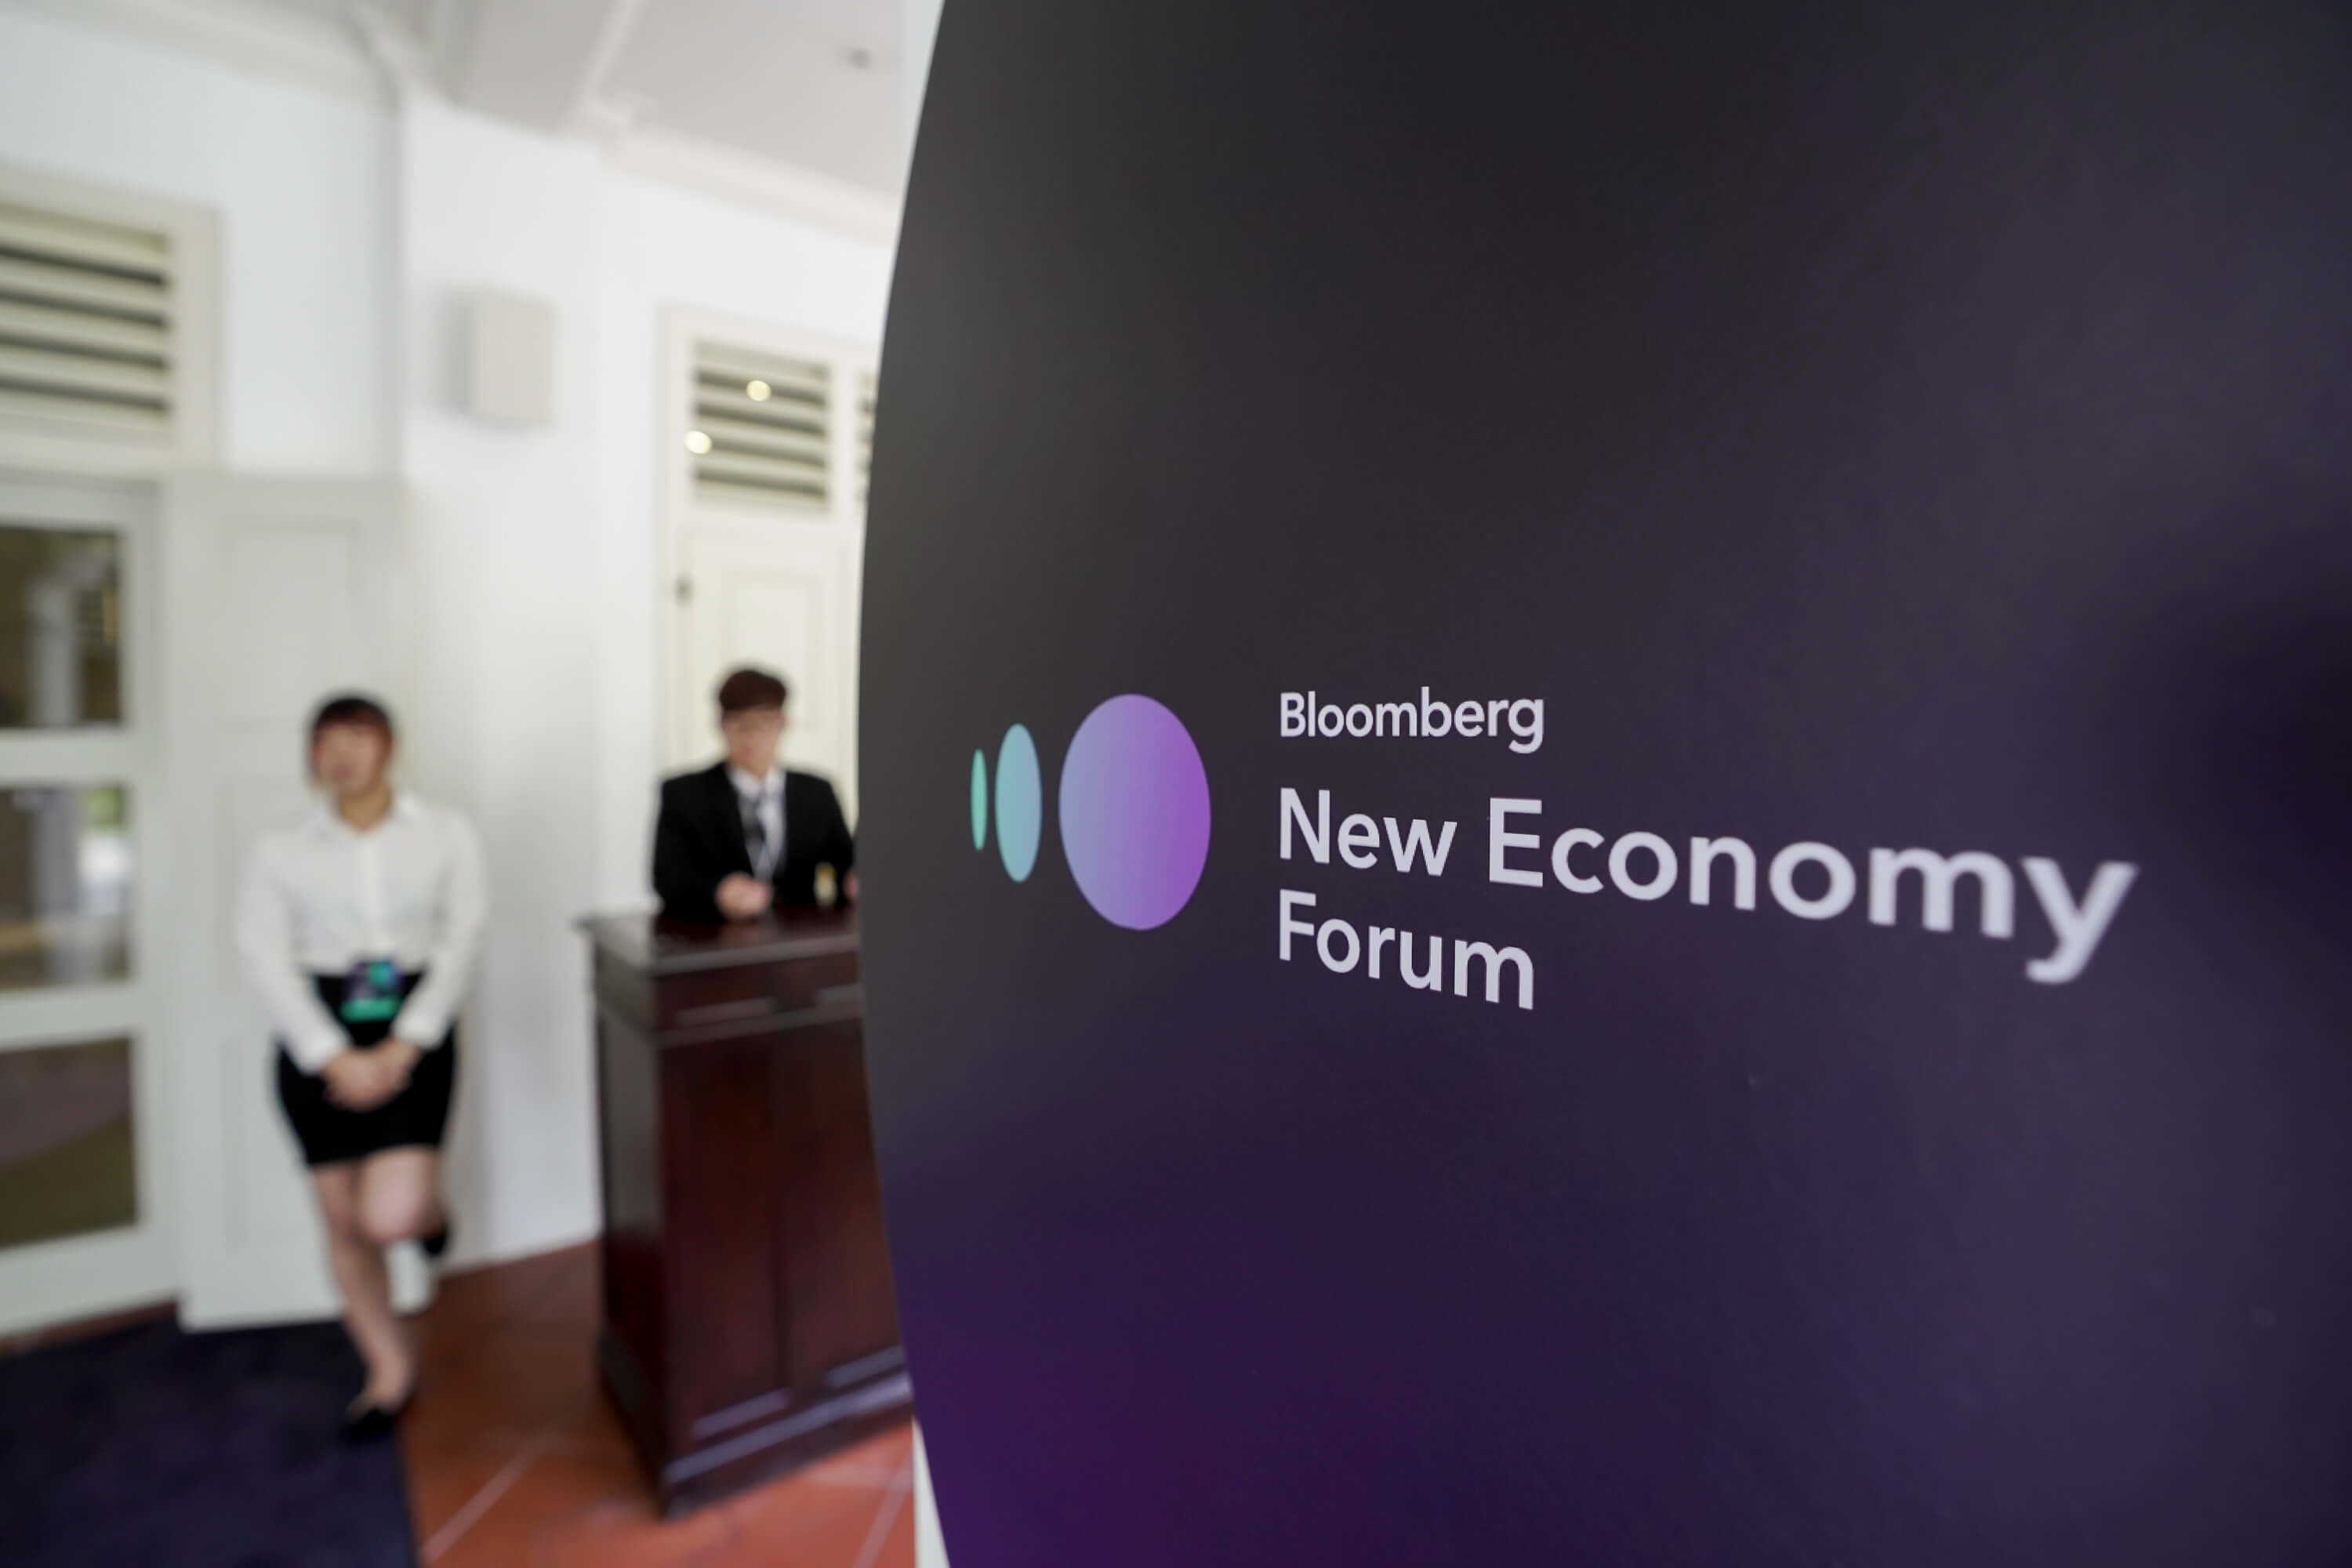 Bloomberg and CCIEE Joint Statement Regarding New Economy Forum Changes